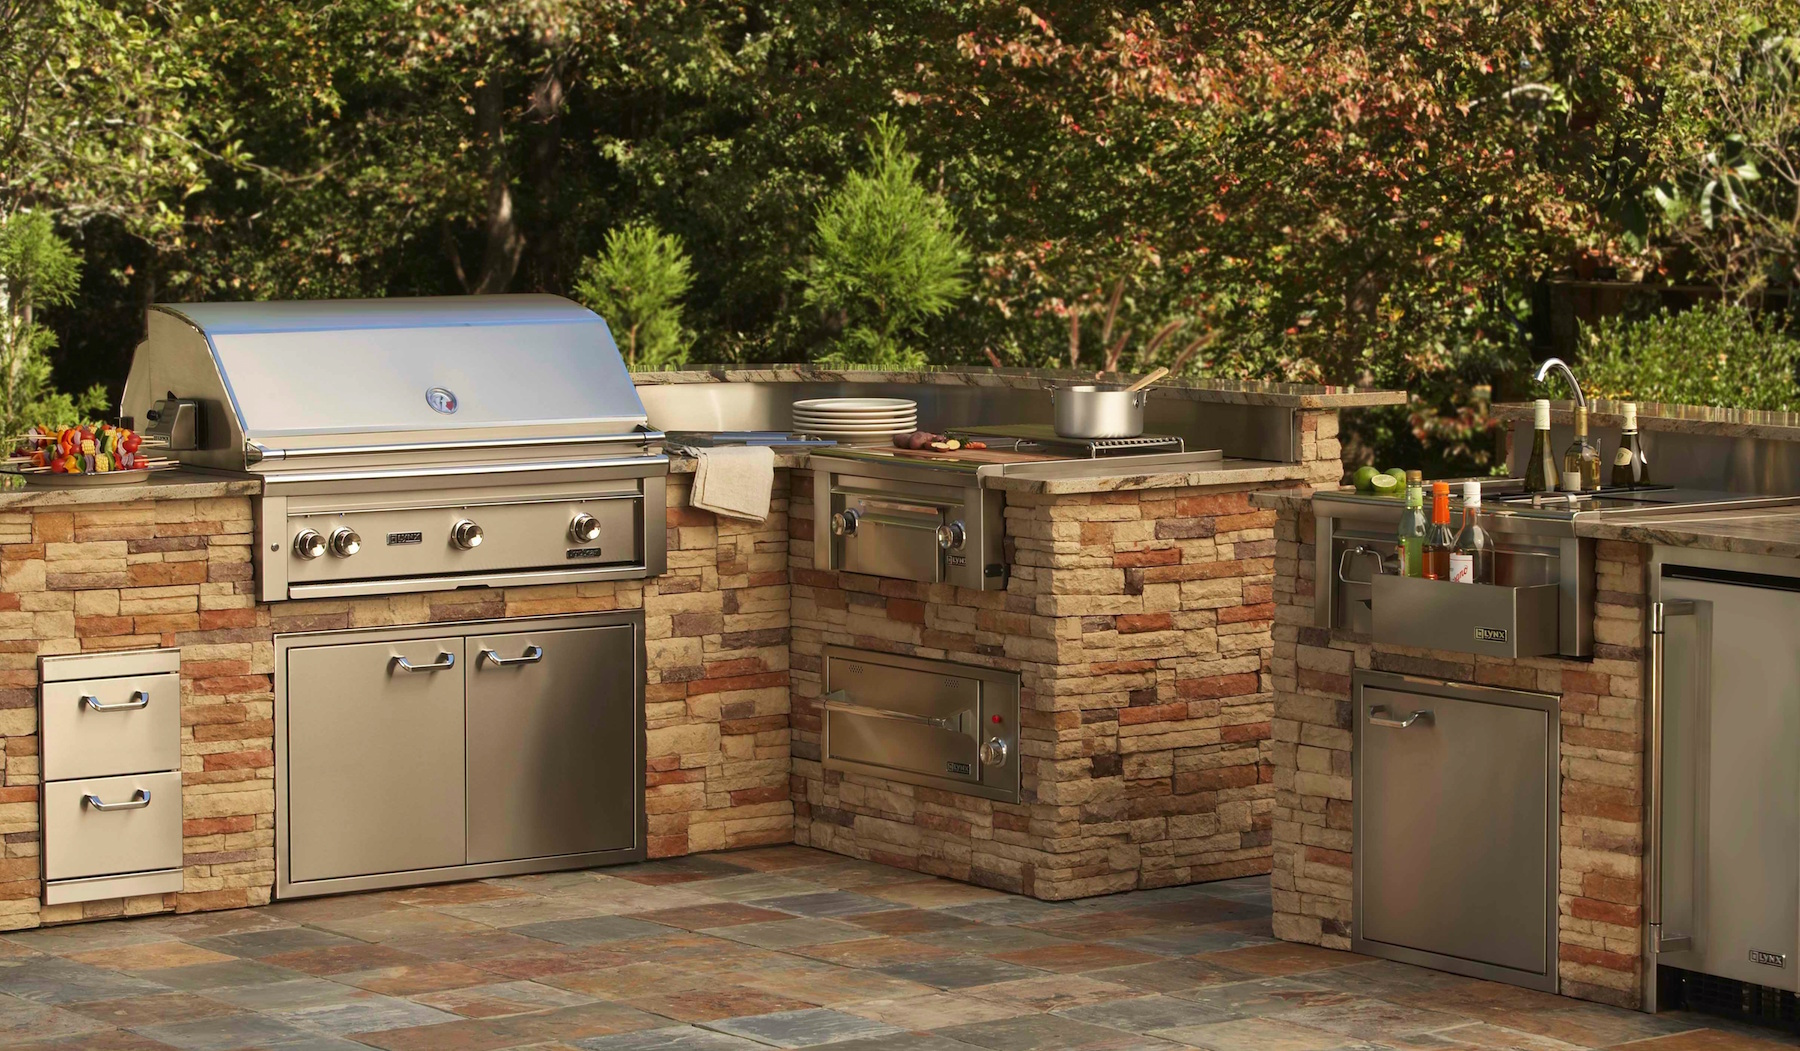 Choosing a professional barbecue grill for your outdoor for Outdoor kitchen refrigerators built in